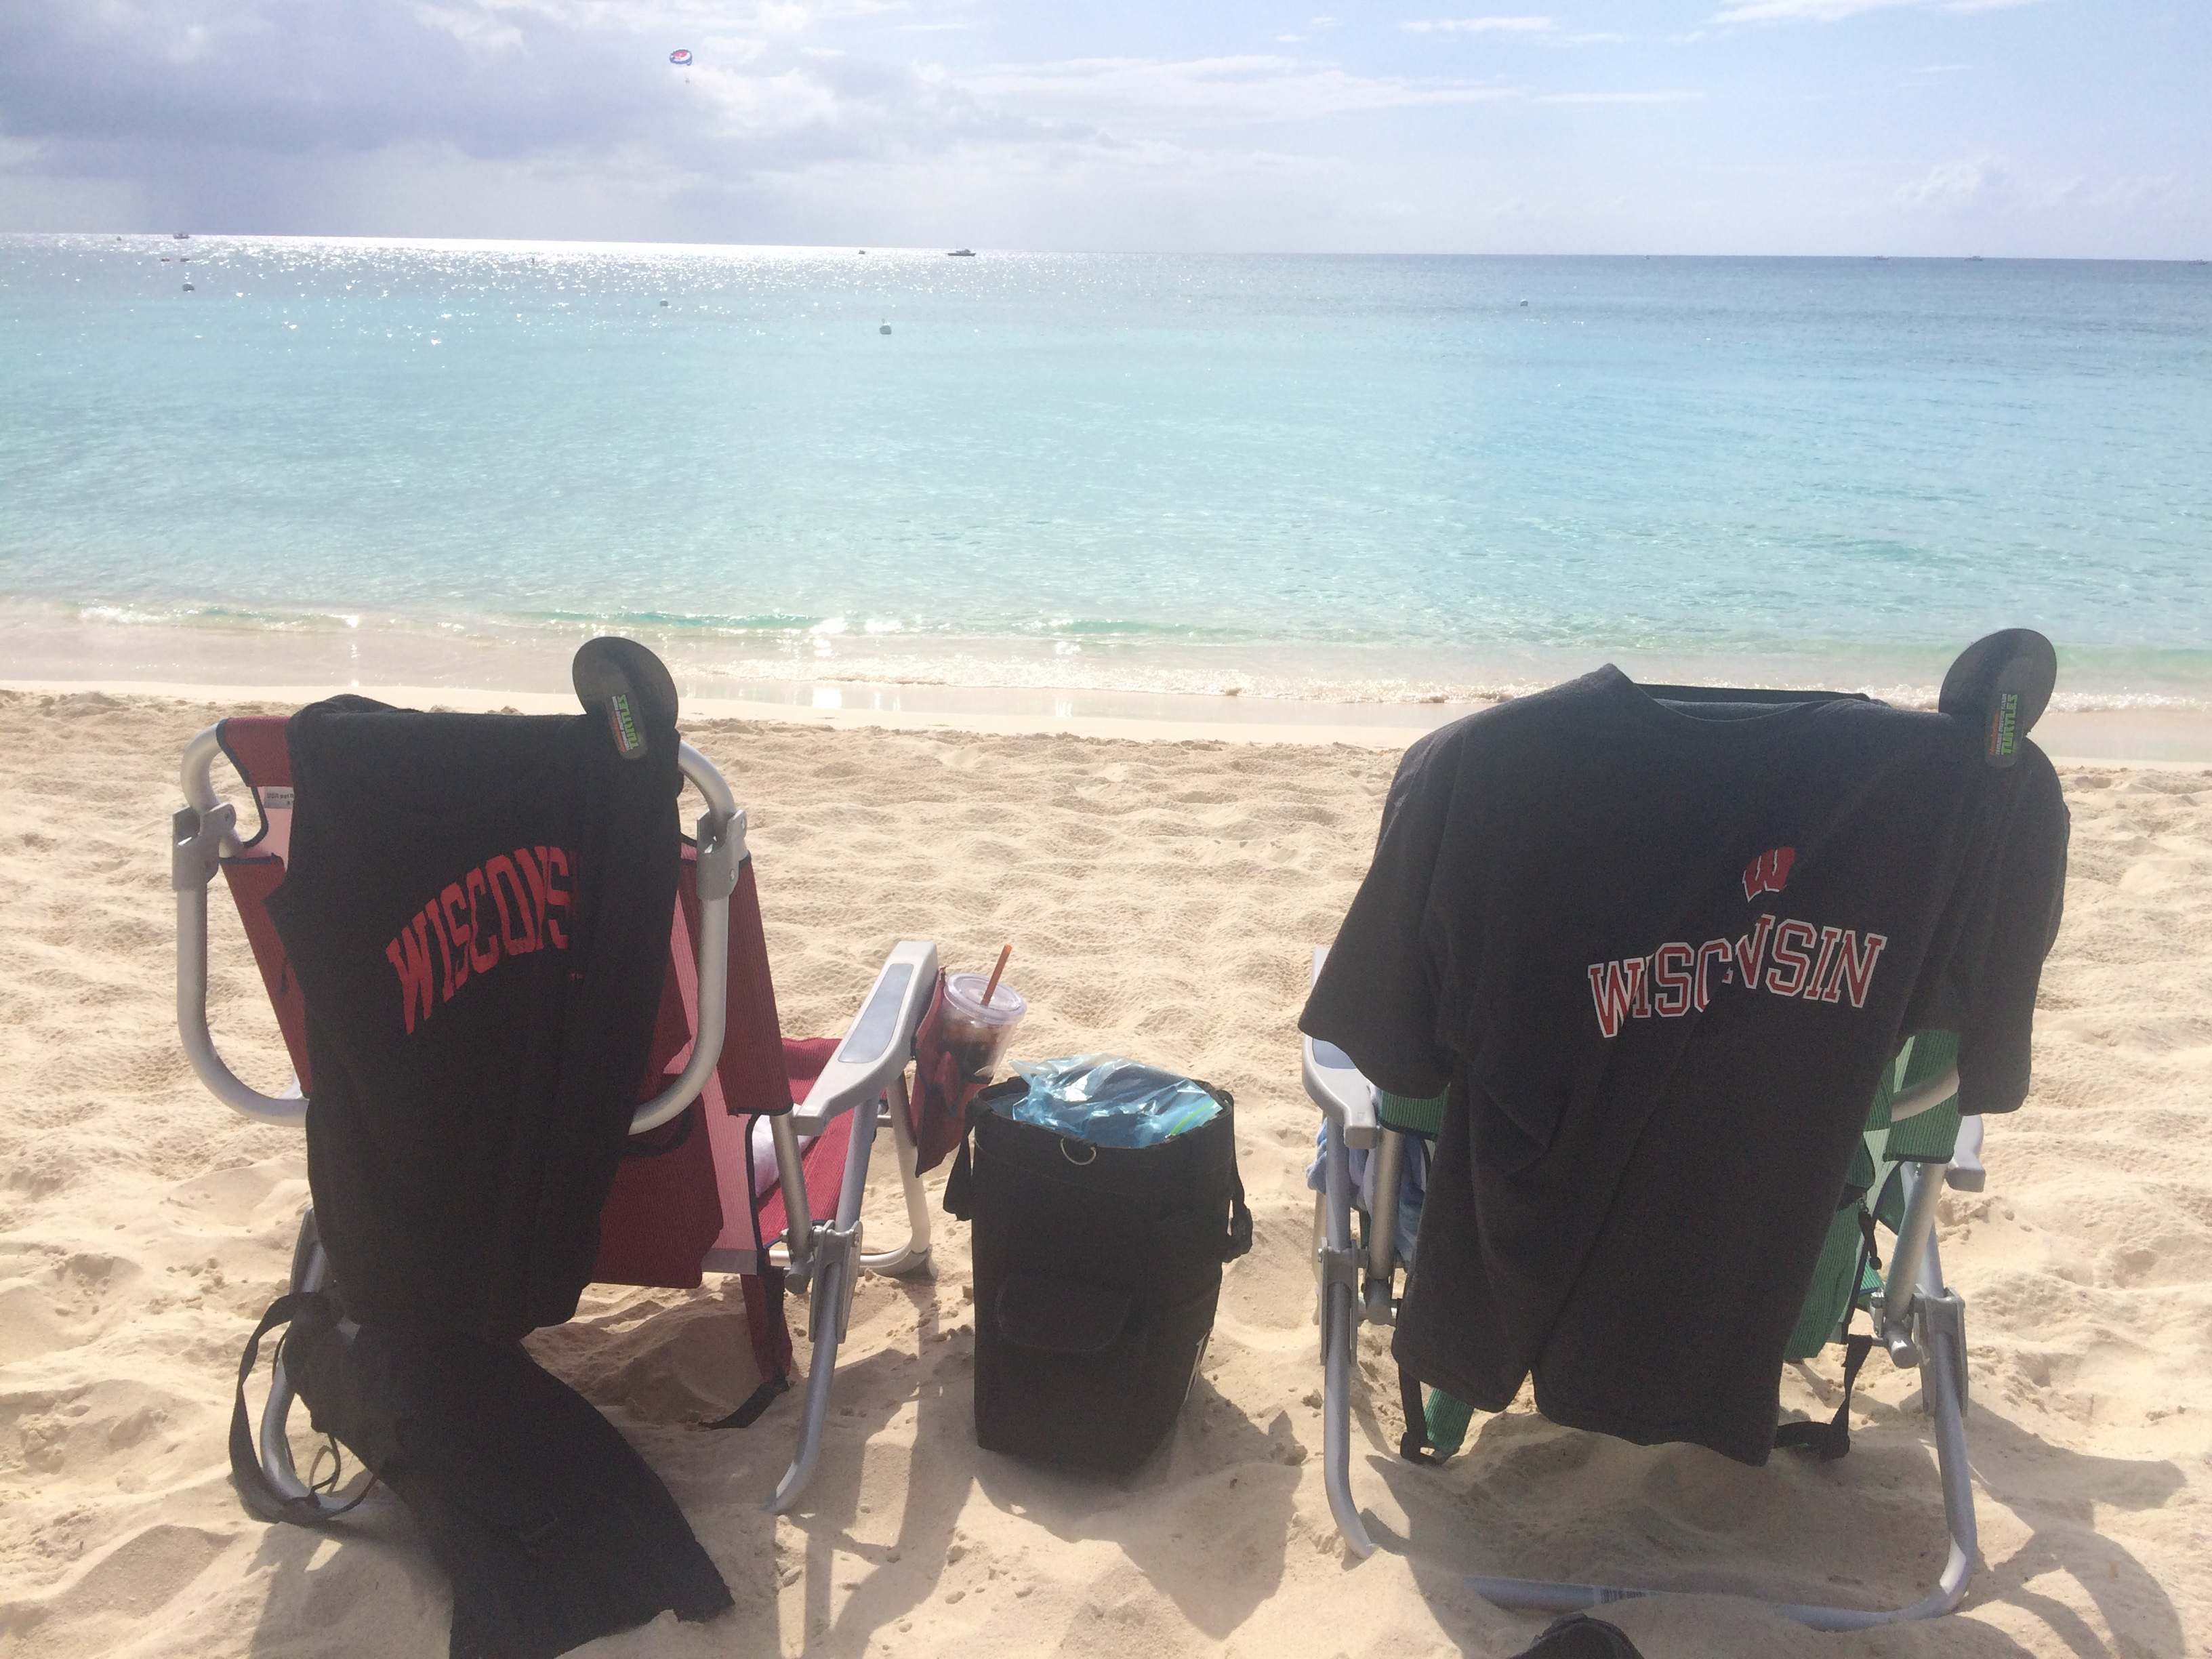 Pat & Sharry's beach chairs with Badgers t-shirts before the Final Four 2015